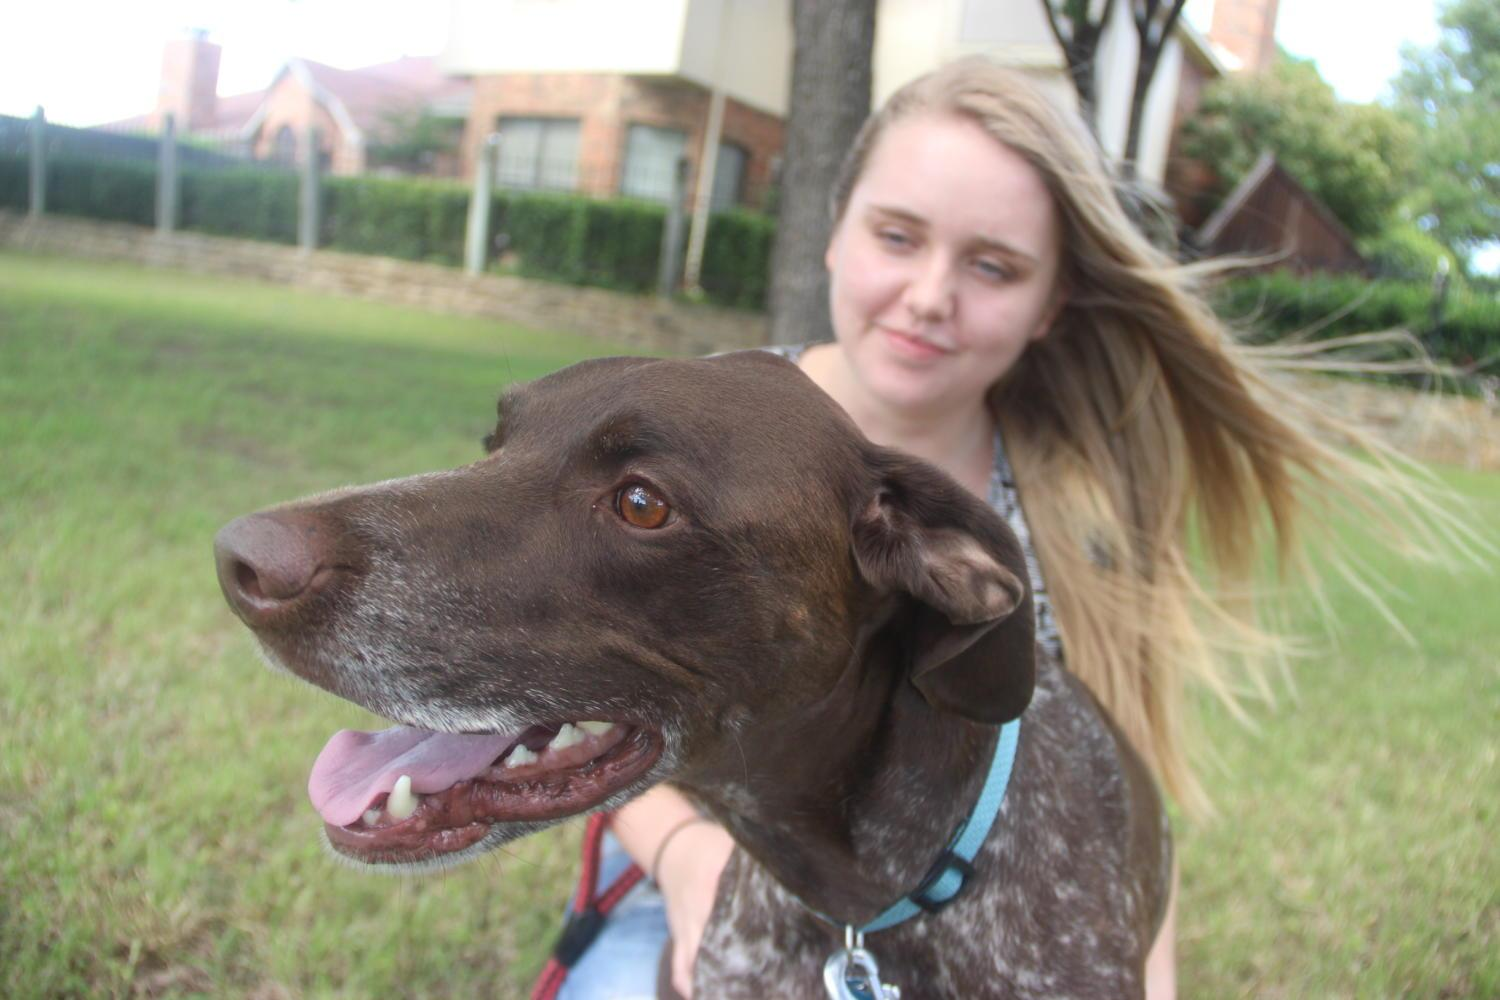 Coppell High School senior Lara Collins plays with her dog, a German Shorthaired Pointer named Sebastian, outside at Allen Road Park on May 1. Collins' passion for animals has inspired her to take a gap year to travel through Europe and Australia to gain experience with animals for her future career in Captive Wildlife Care.